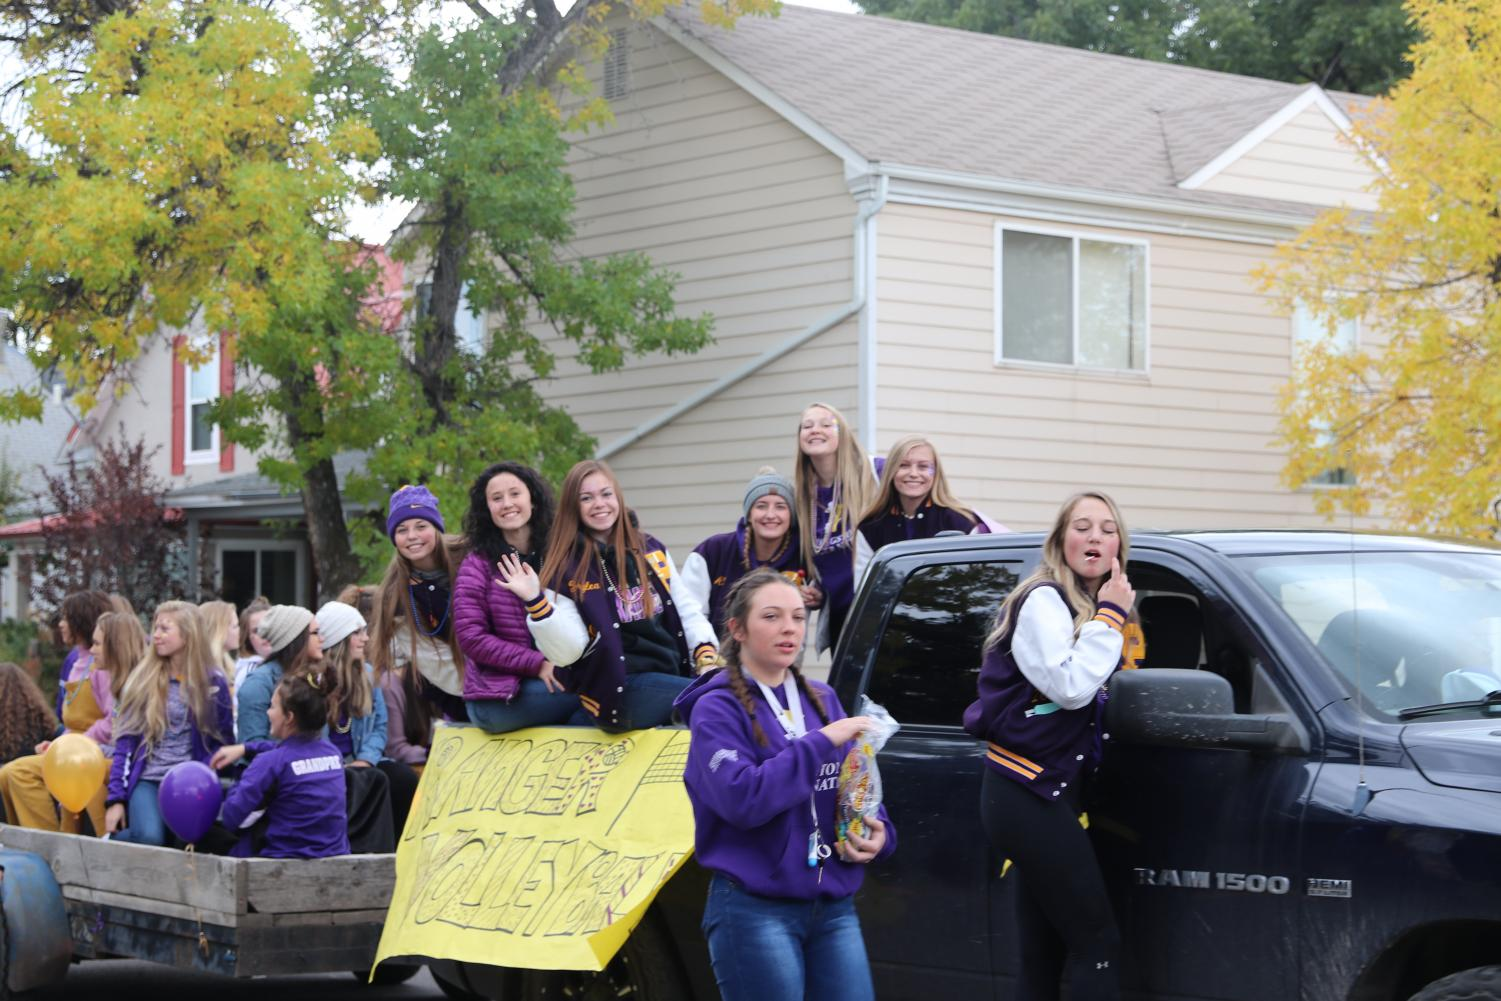 The PHS volleyball team hands out candy during the parade.